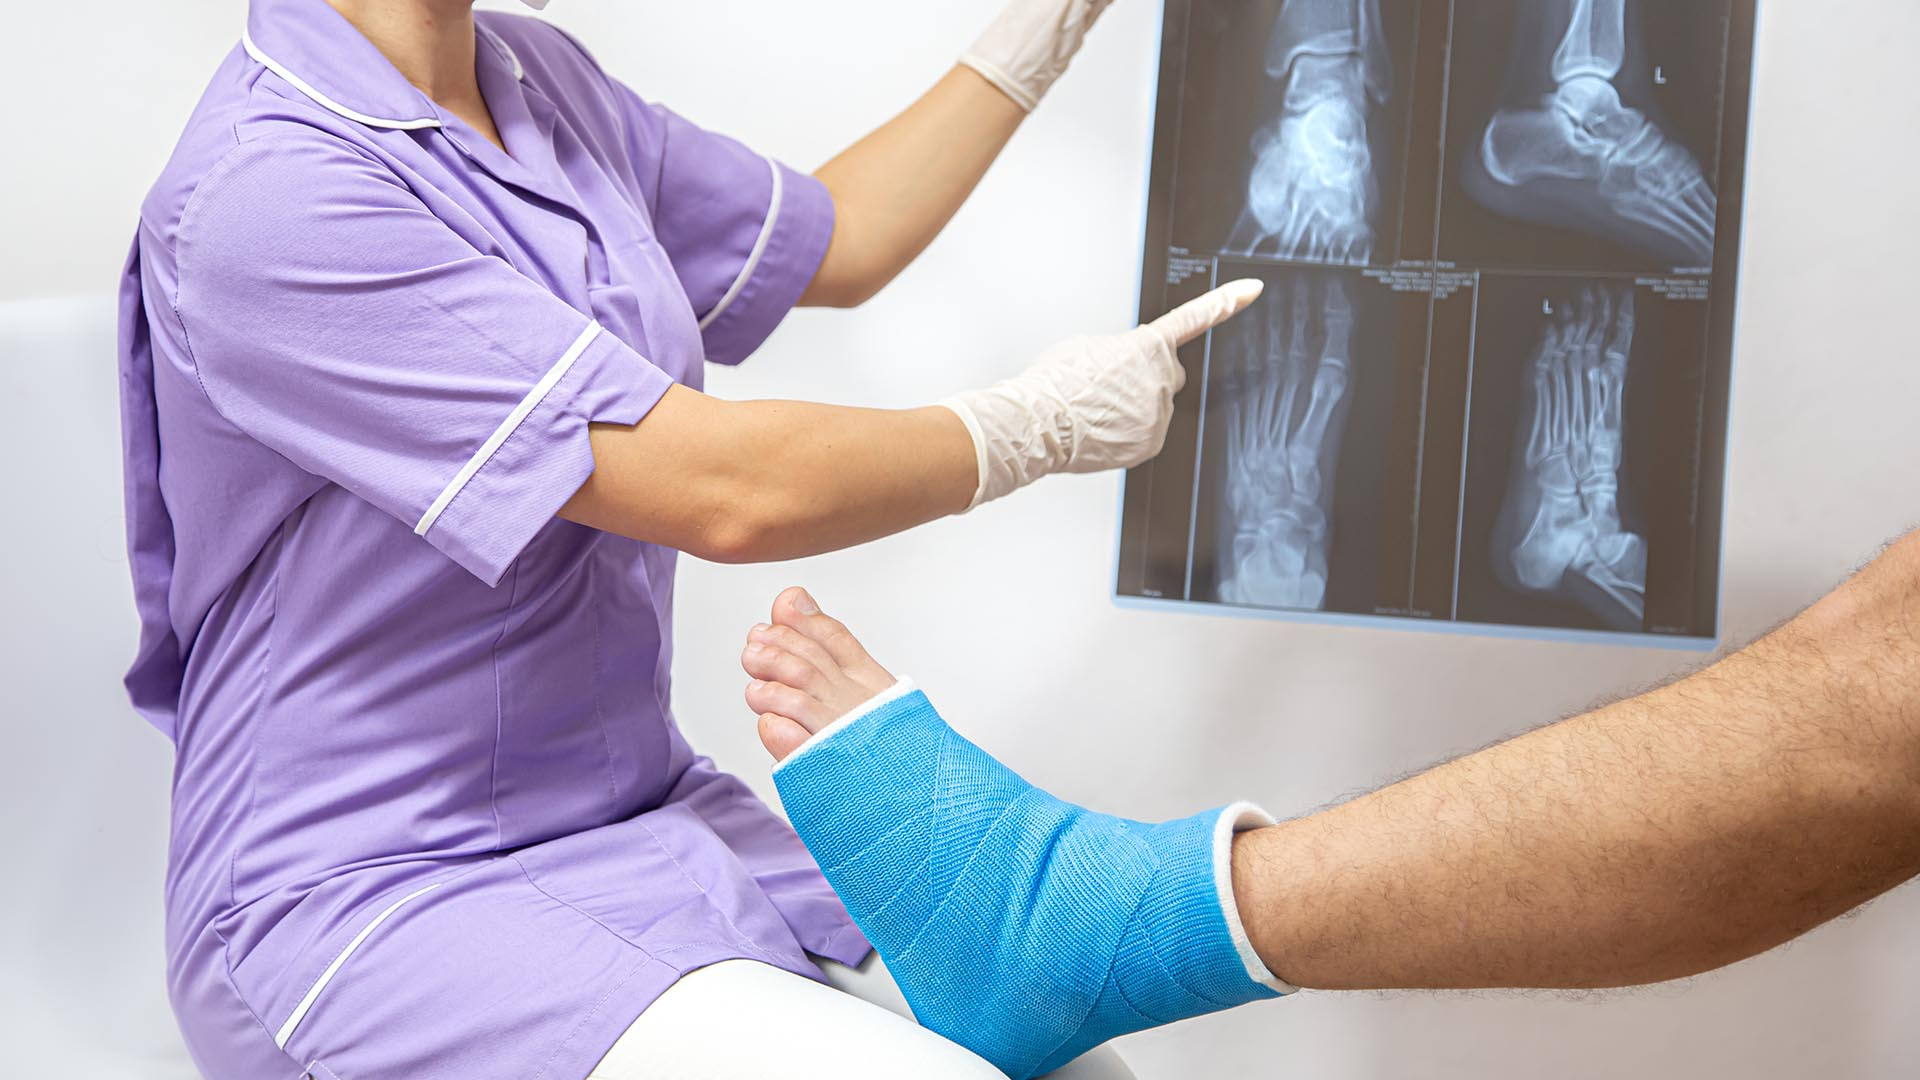 doctor holding x-ray talking to patient with fractured ankle